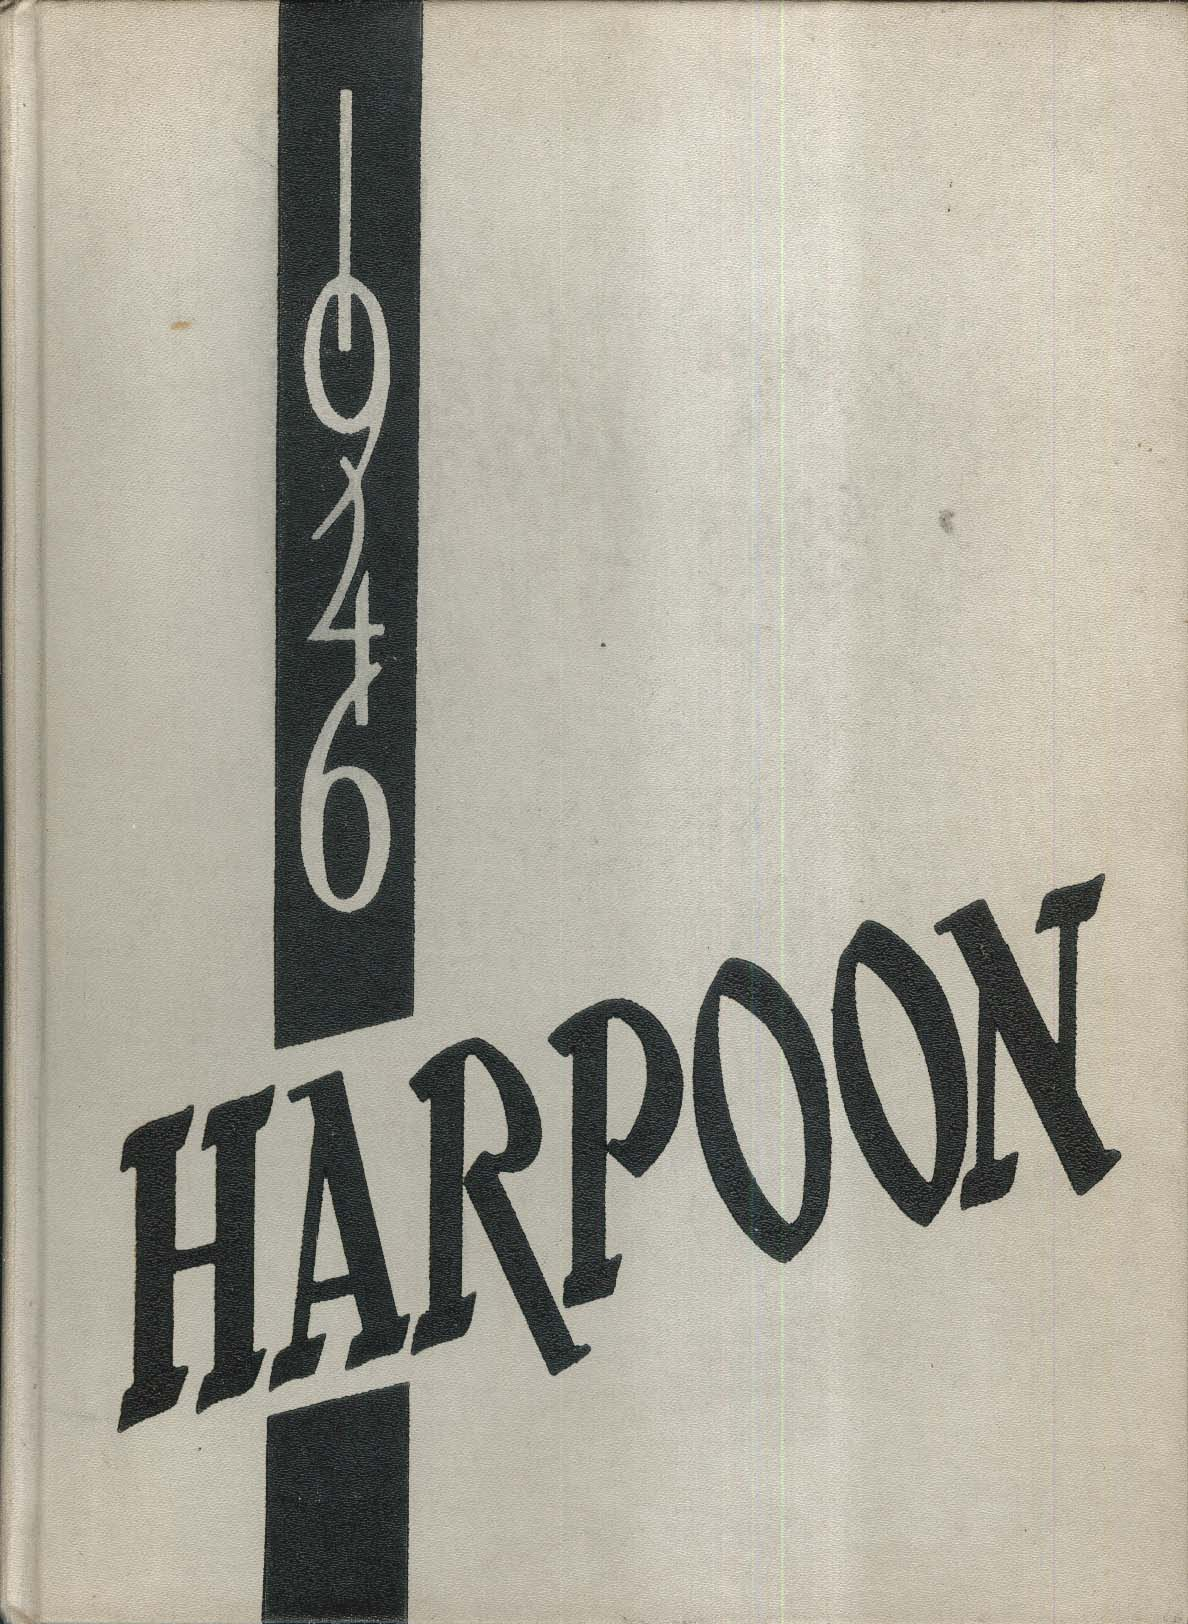 Image for 1946 Harpoon Harlan High School Harlan Iowa IA Yearbook